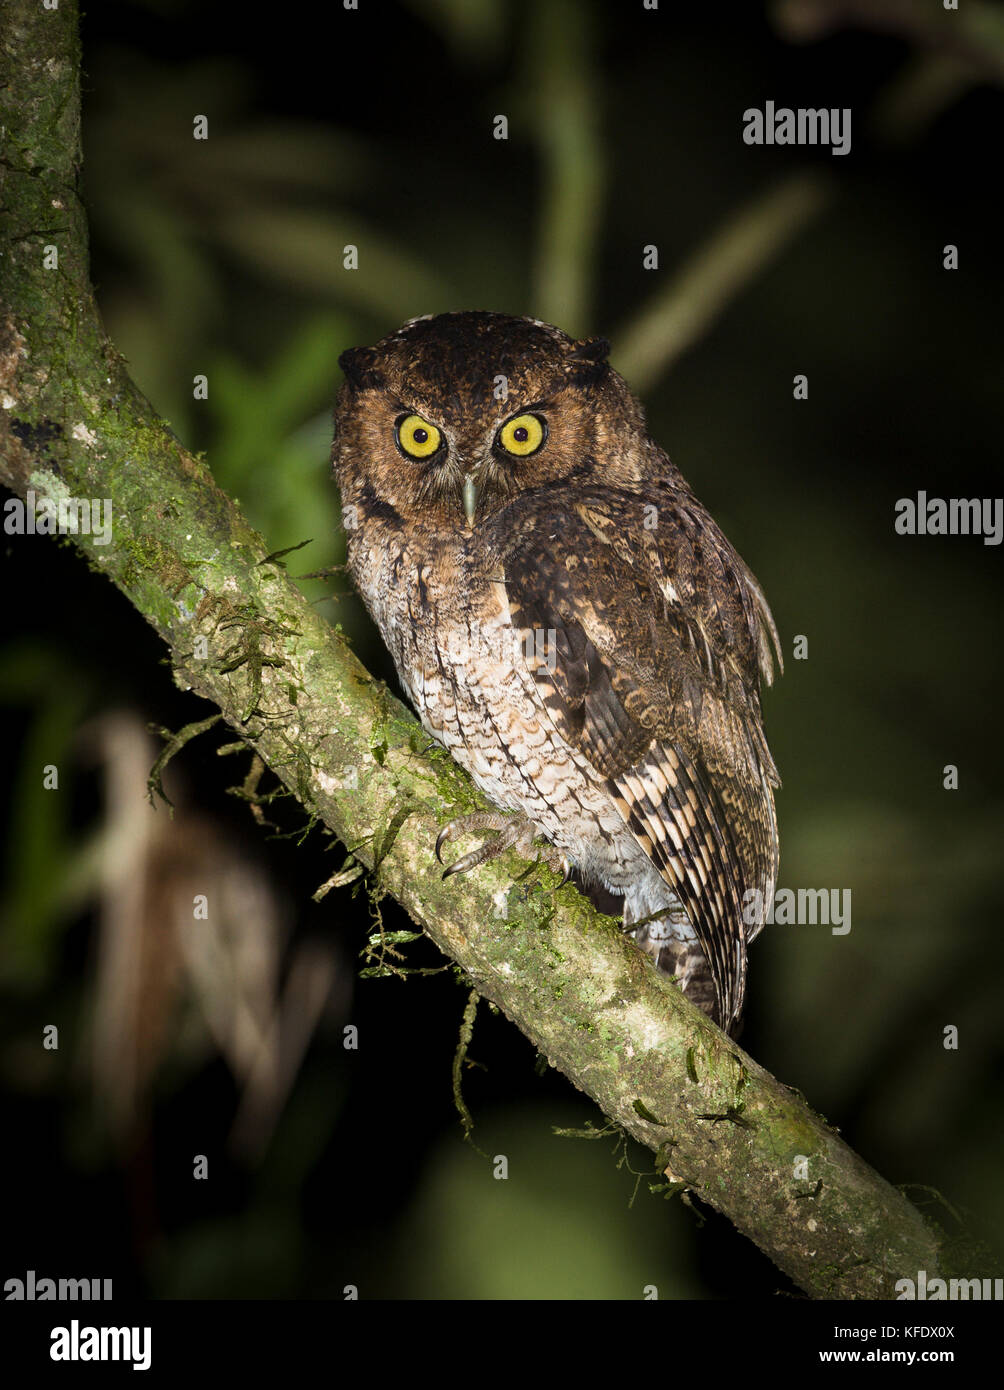 Black-capped Screech-Owl (Megascops atricapilla), endemic to the Atlantic Rainforest - Stock Image